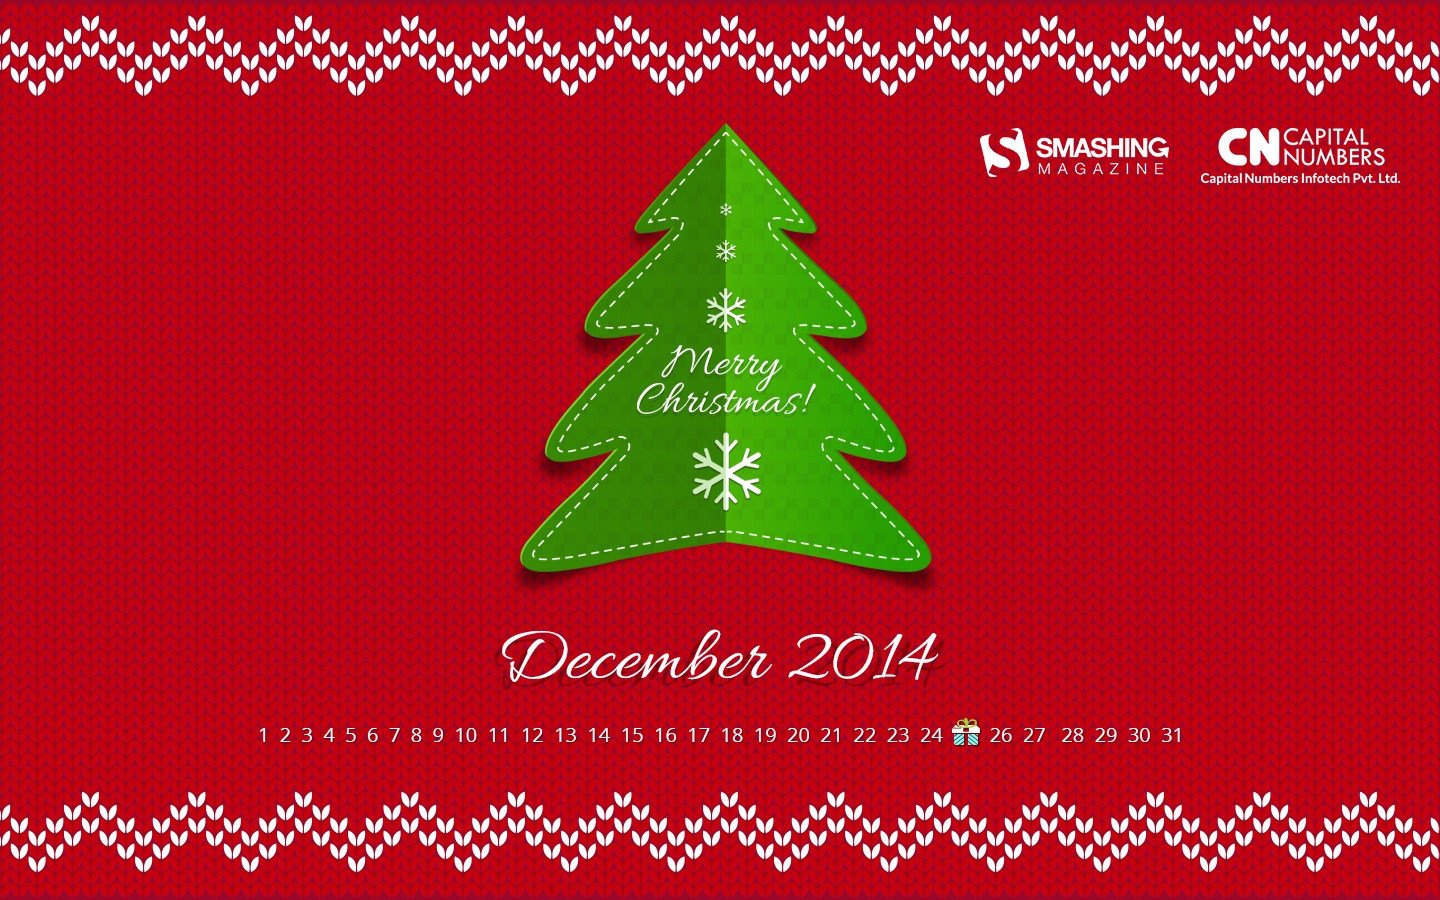 In January Calendar Wallpaper 51190